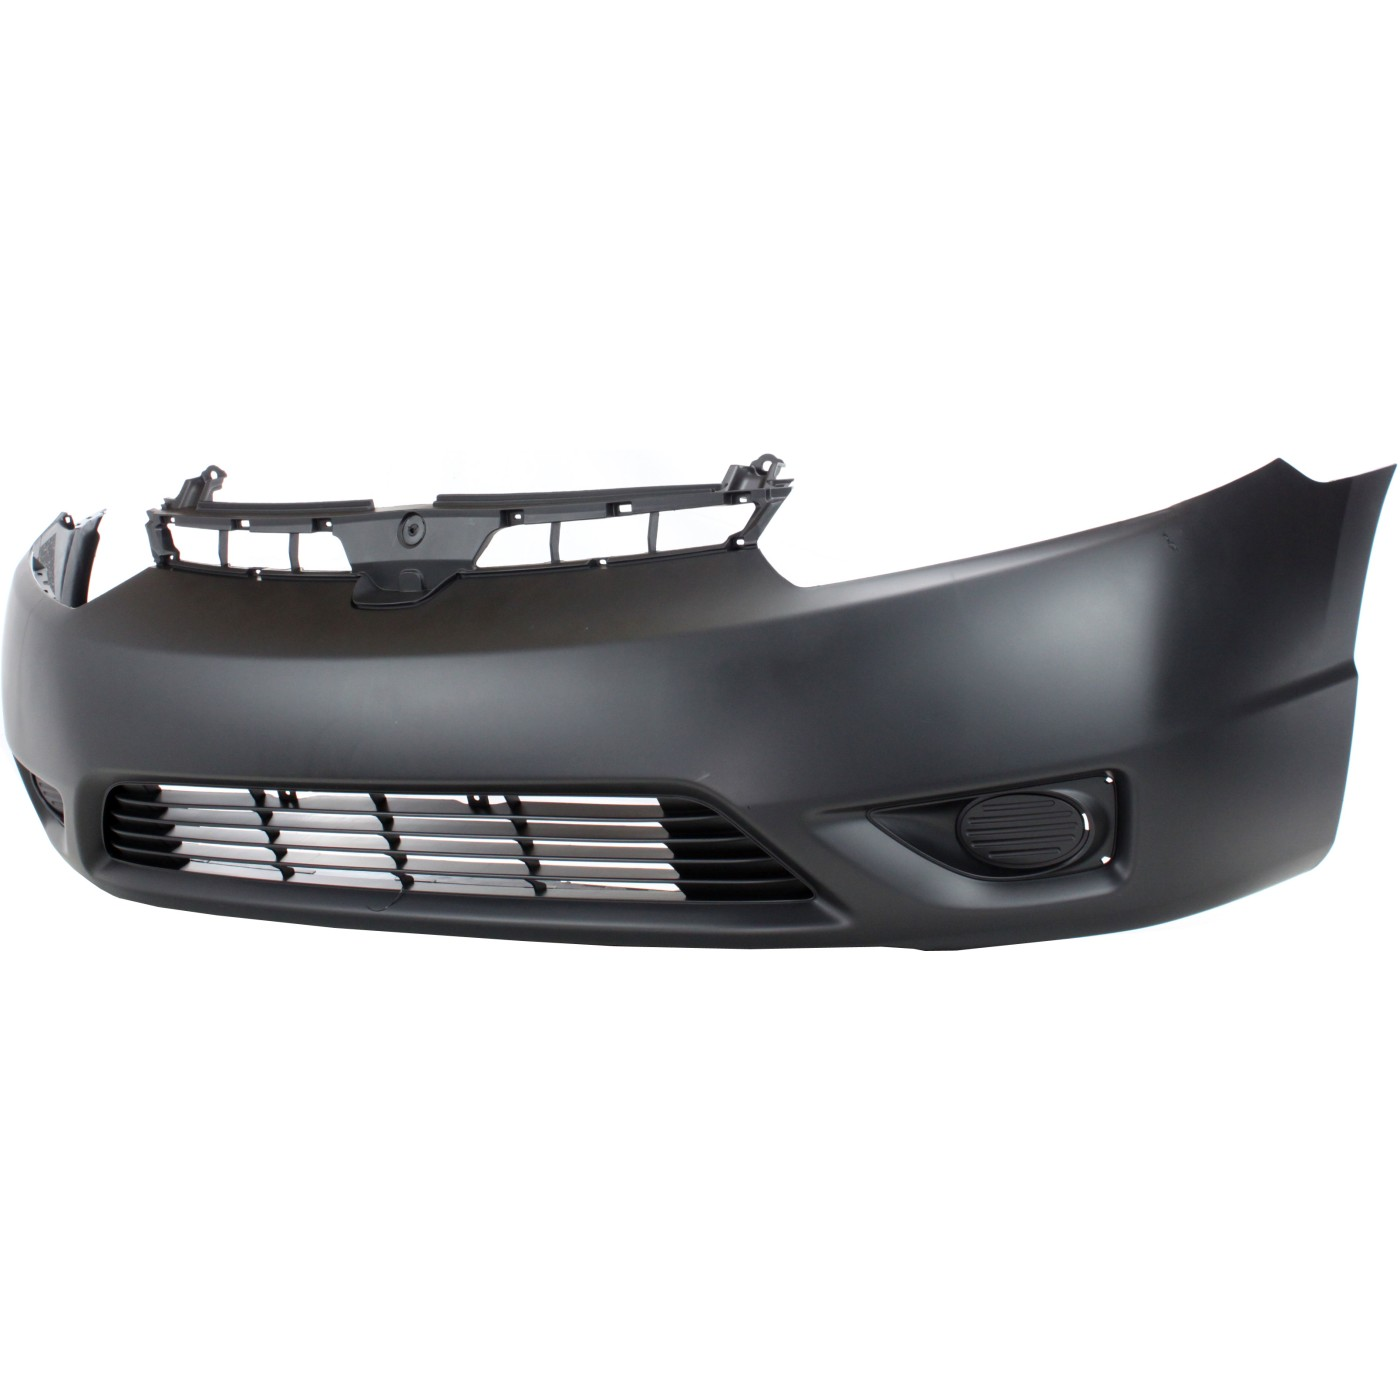 Front Bumper Cover Fascia for 2006 2007 2008 Honda Civic Coupe NEW Primered